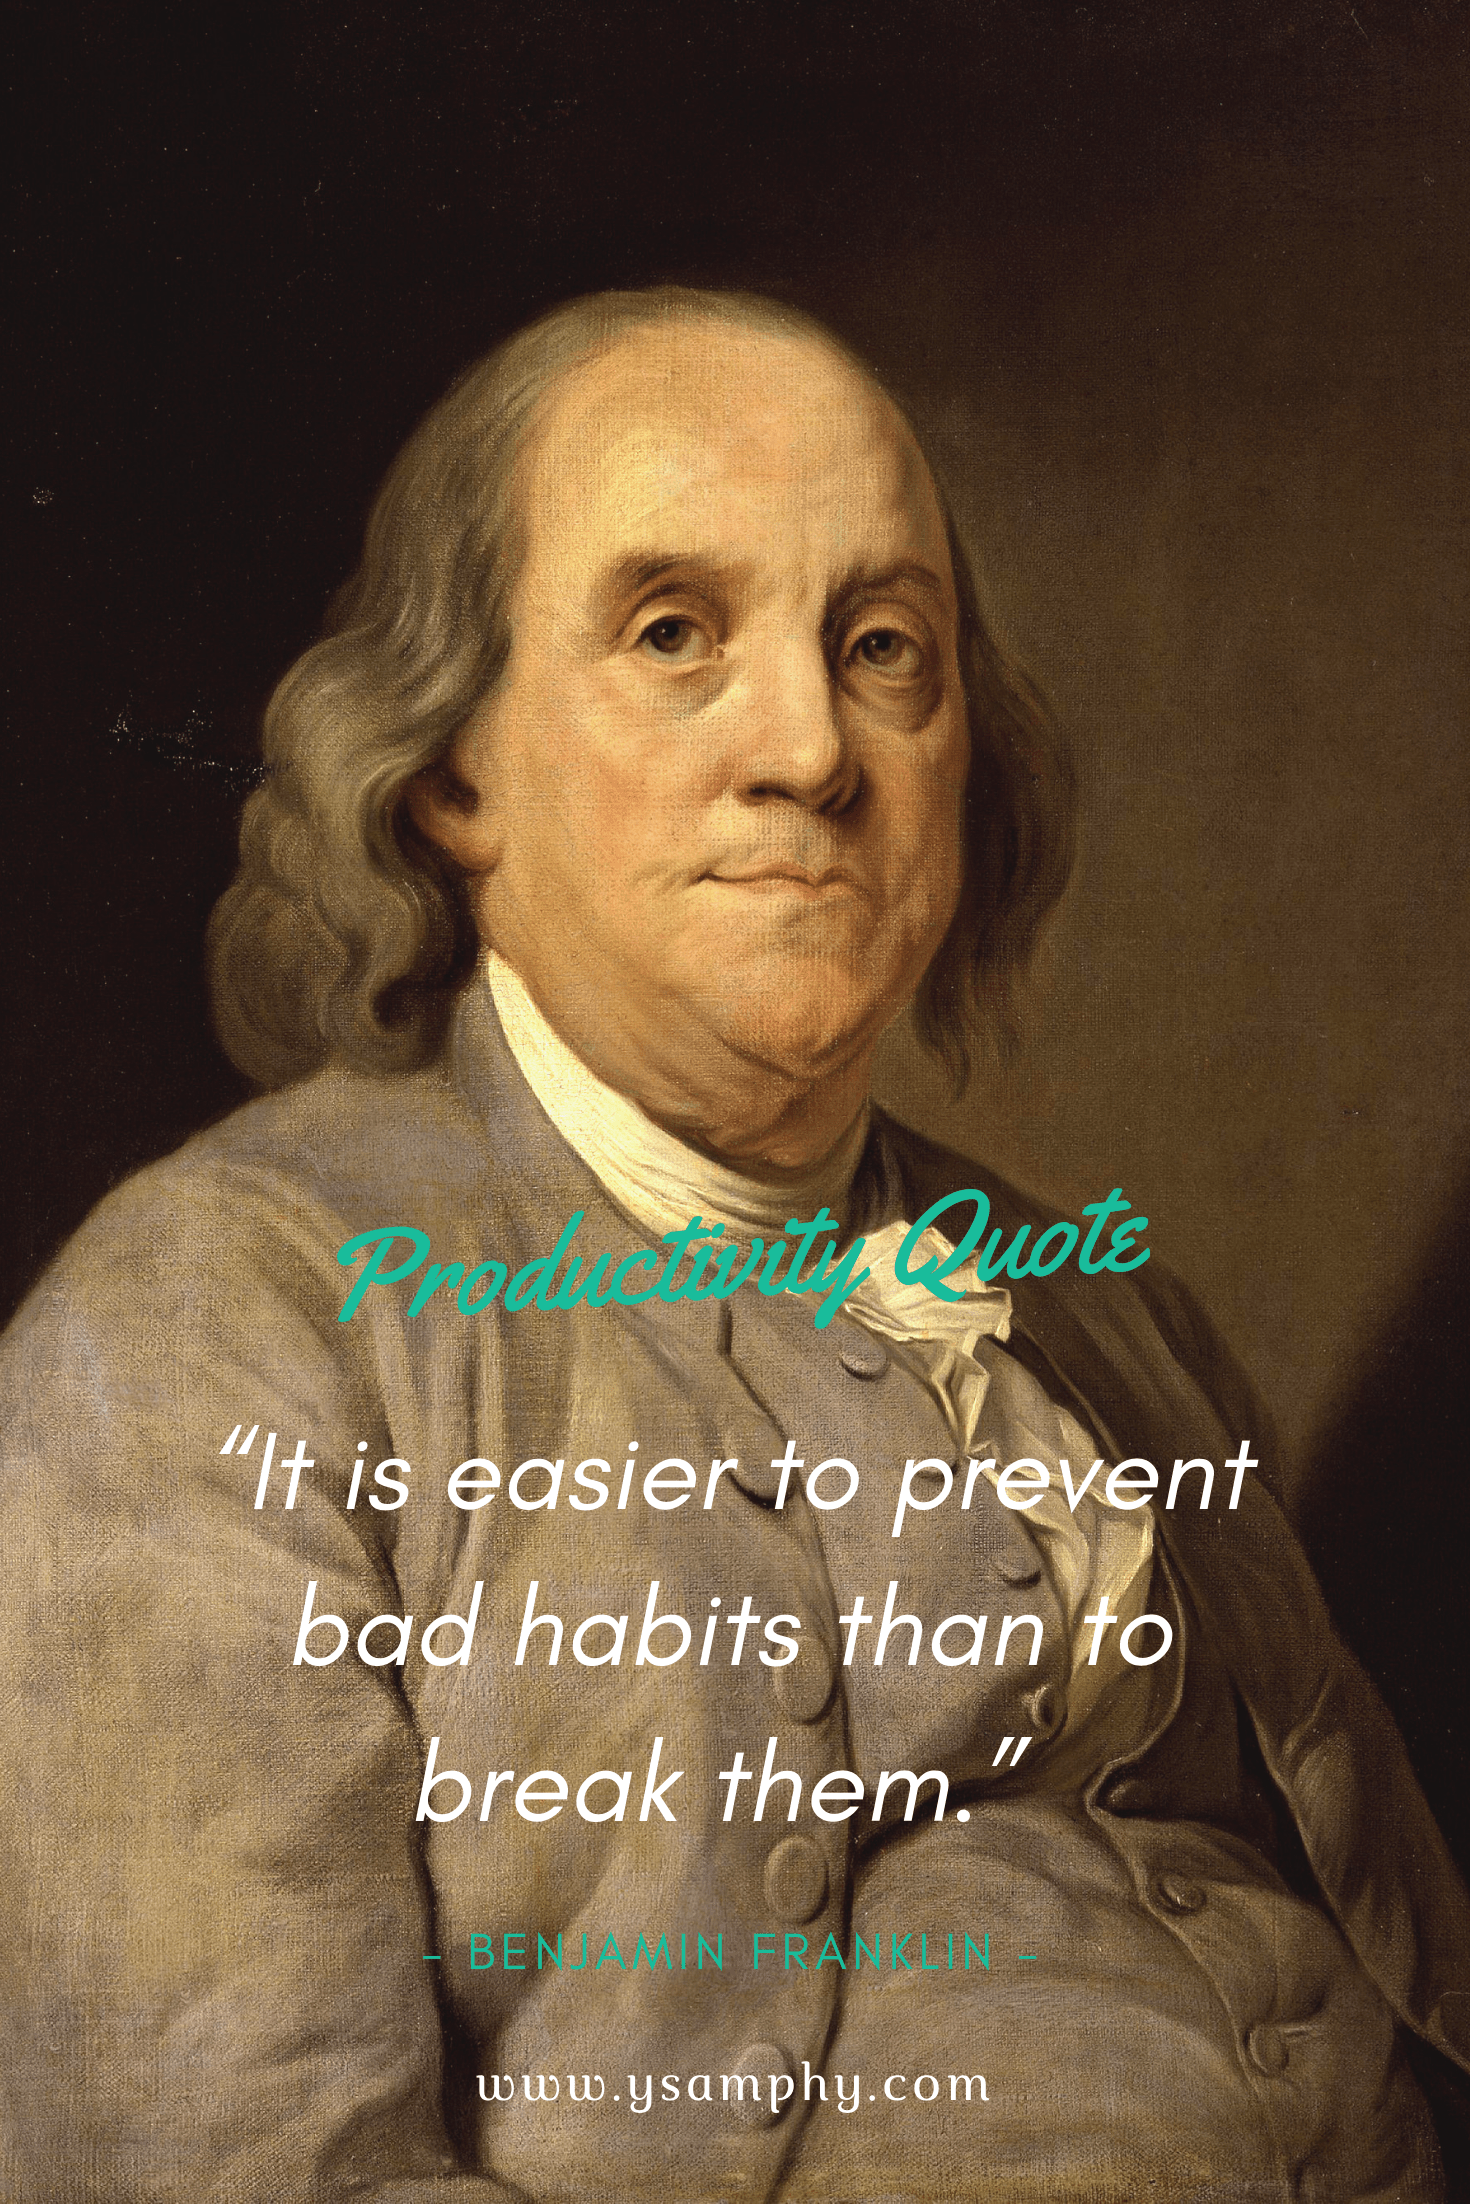 """It is easier to prevent bad habits than to break them."" ~Benjamin Franklin"